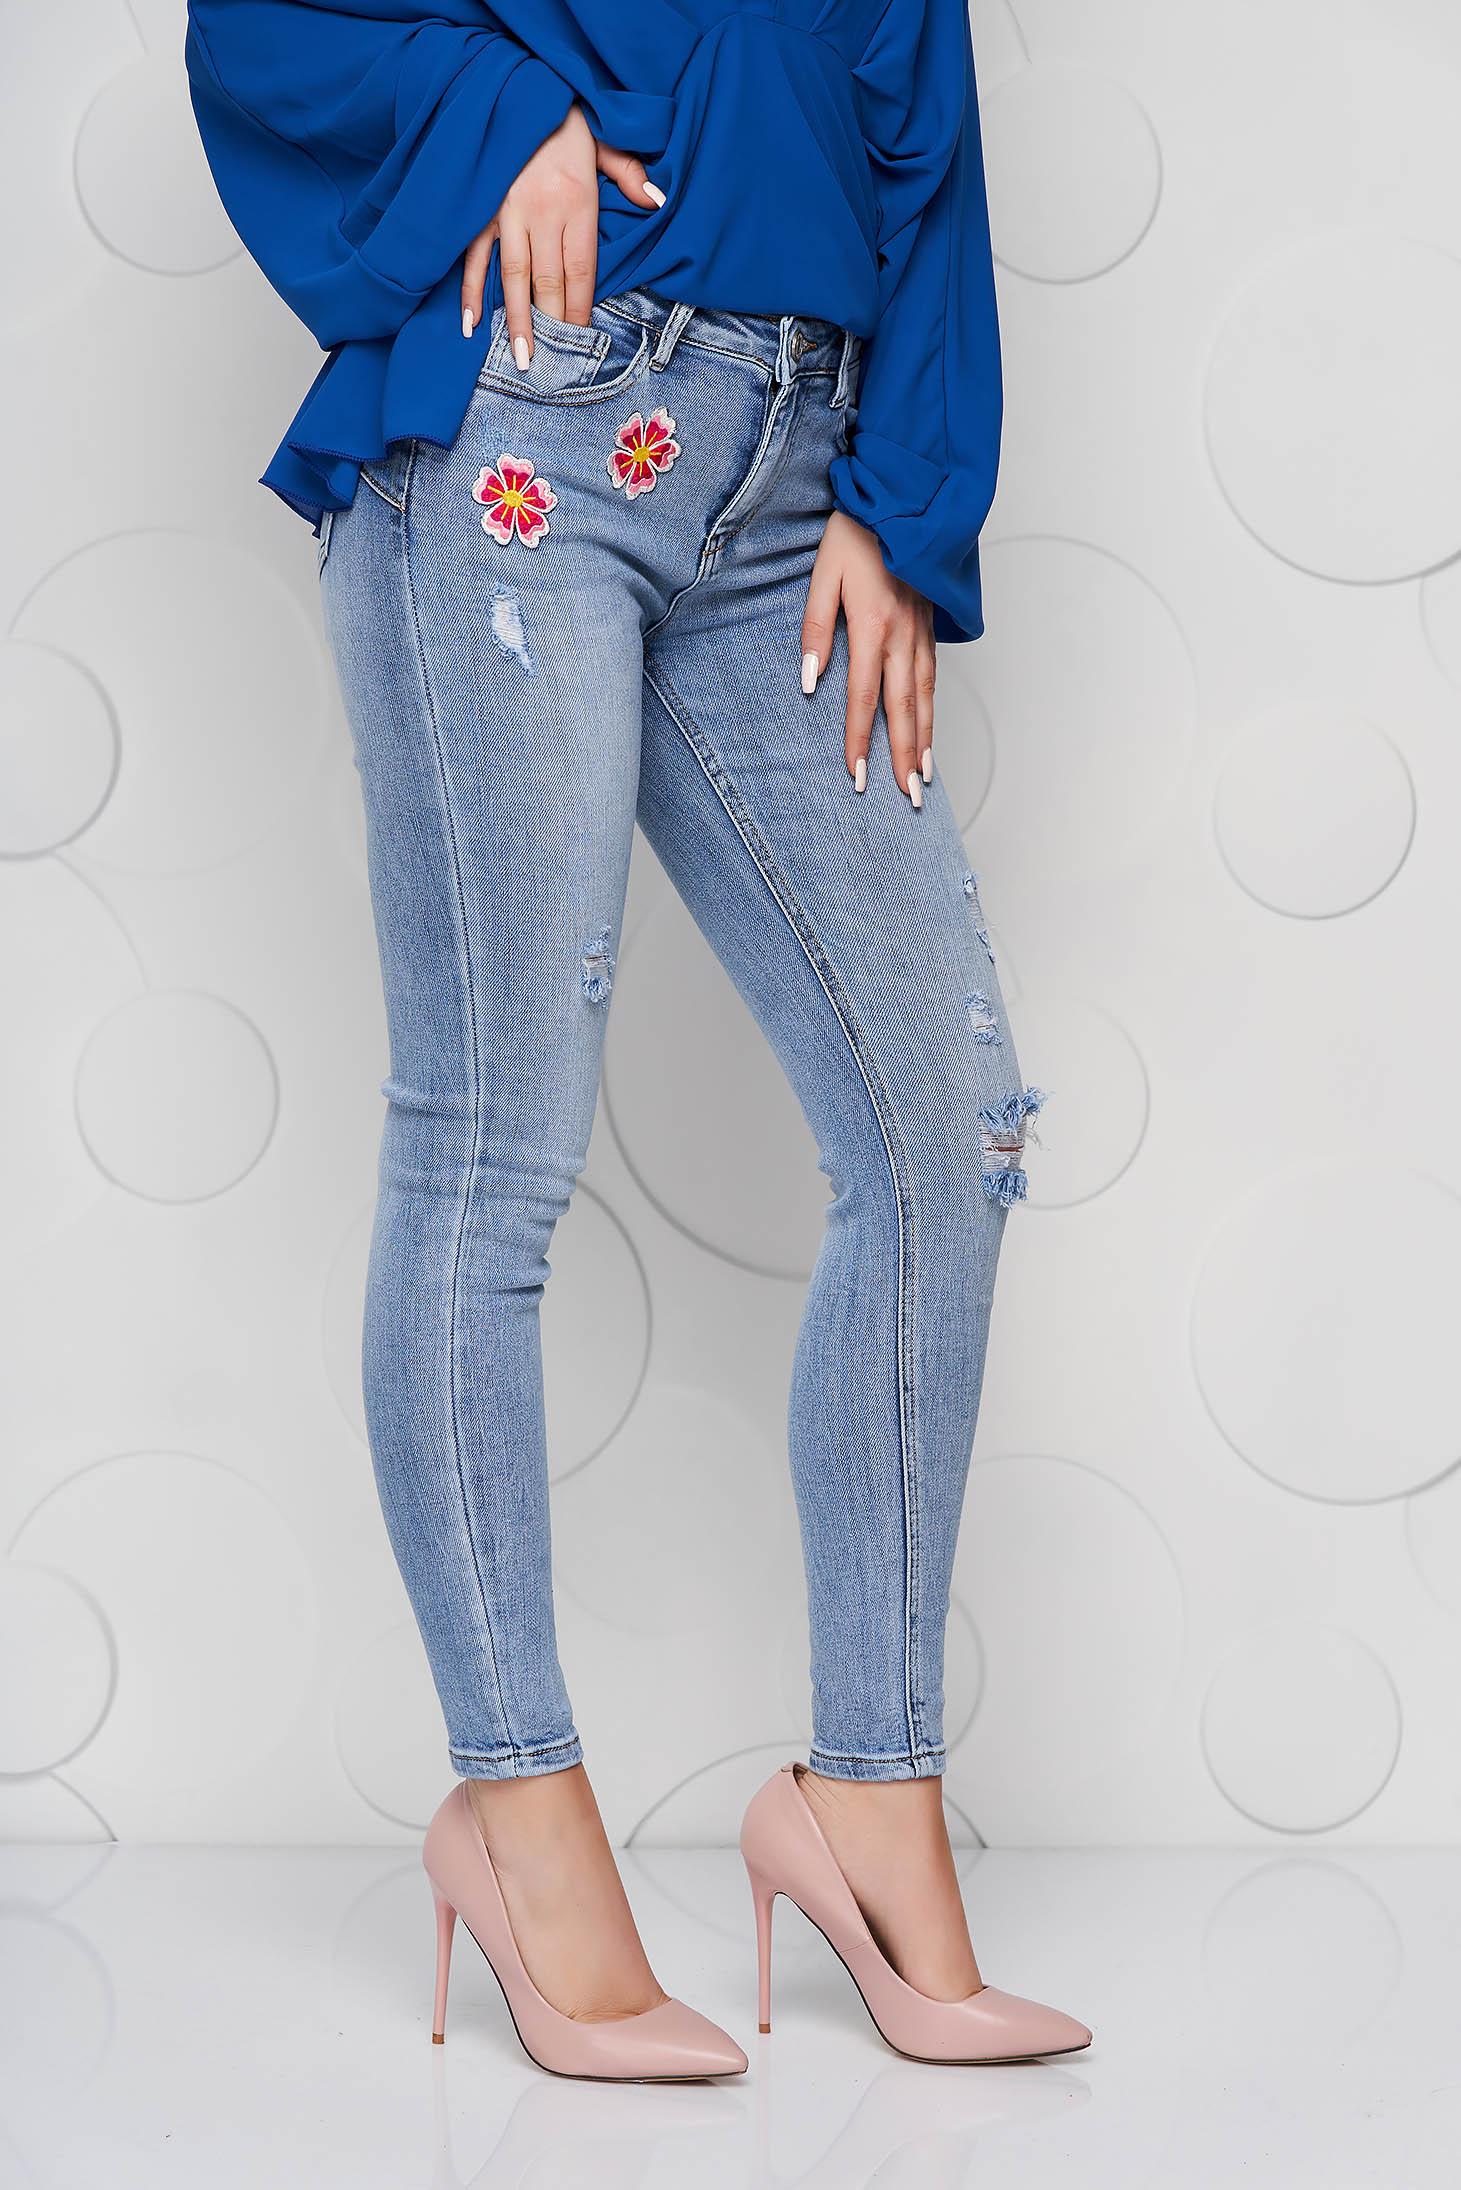 Blue jeans skinny jeans denim high waisted small rupture of material